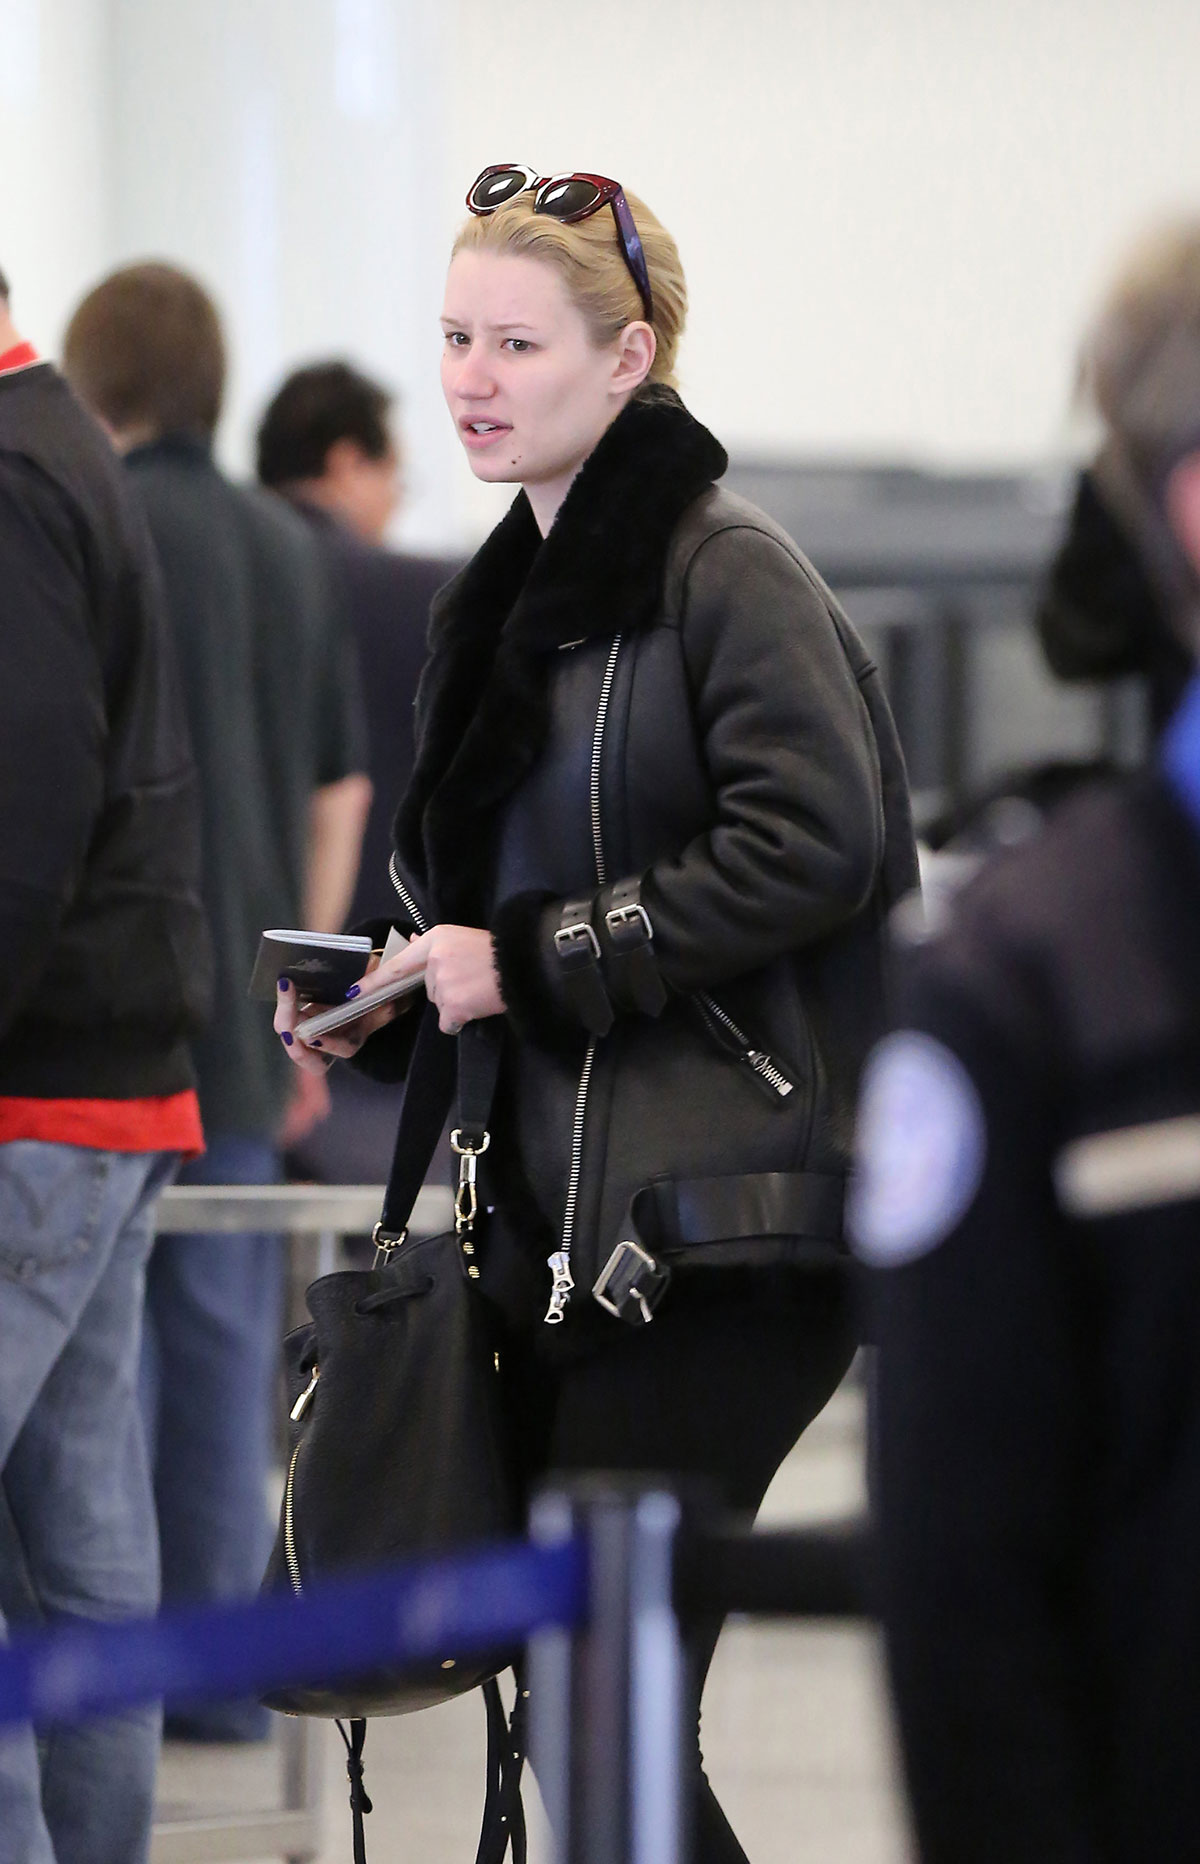 Iggy Azalea Without Makeup At Lax Airport In Los Angeles